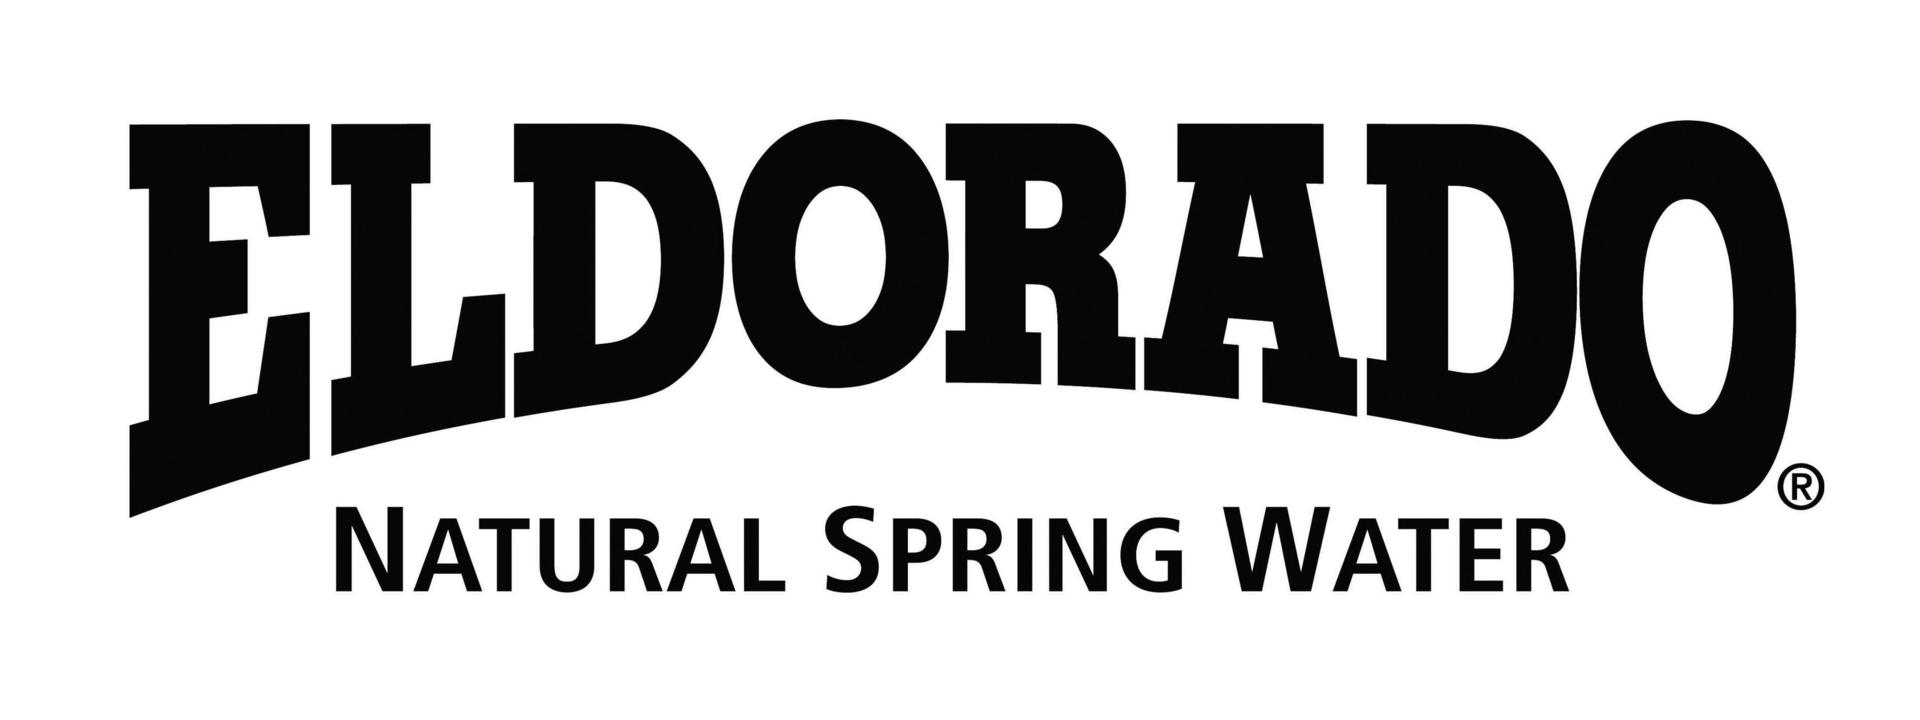 Eldorado natural springs water logo